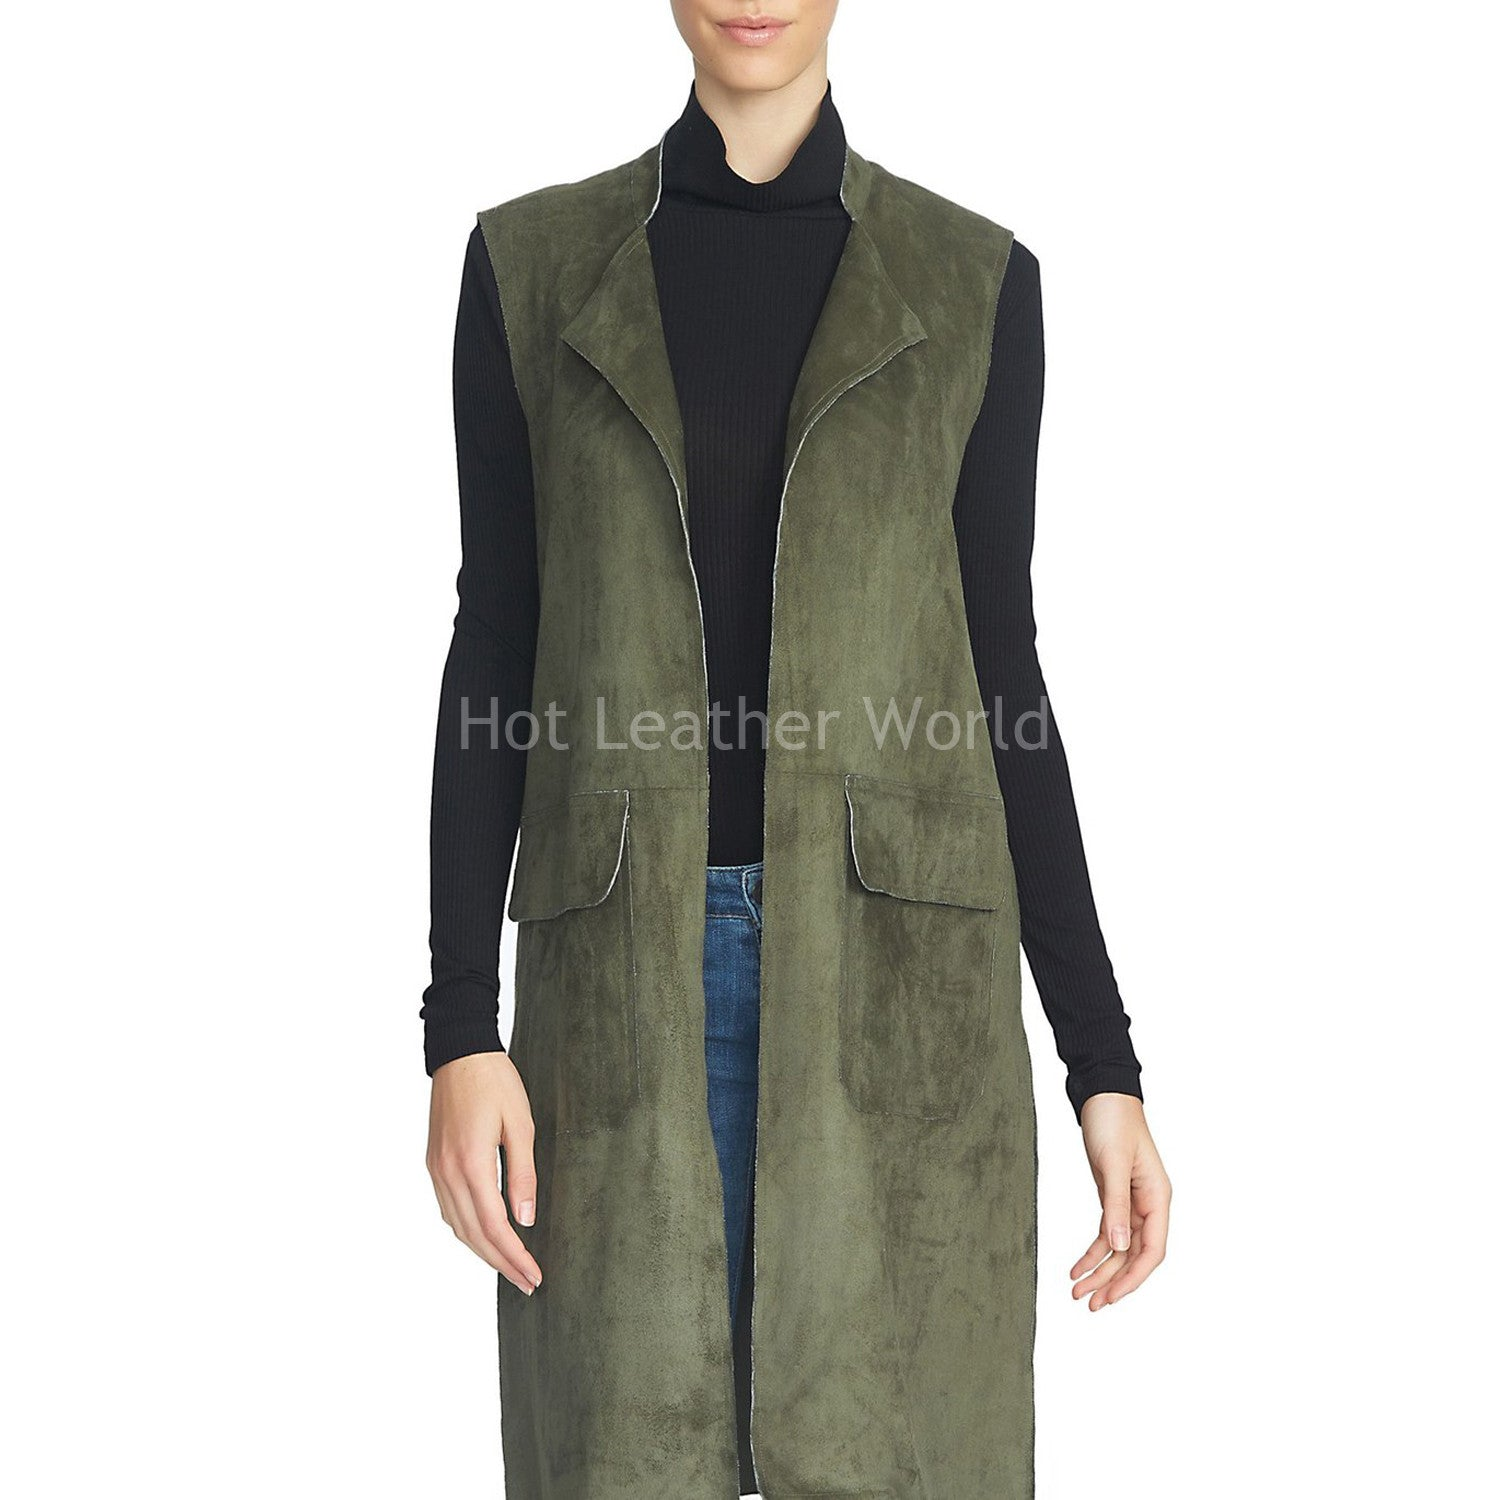 Sleeveless Style Leather Coat -  HOTLEATHERWORLD